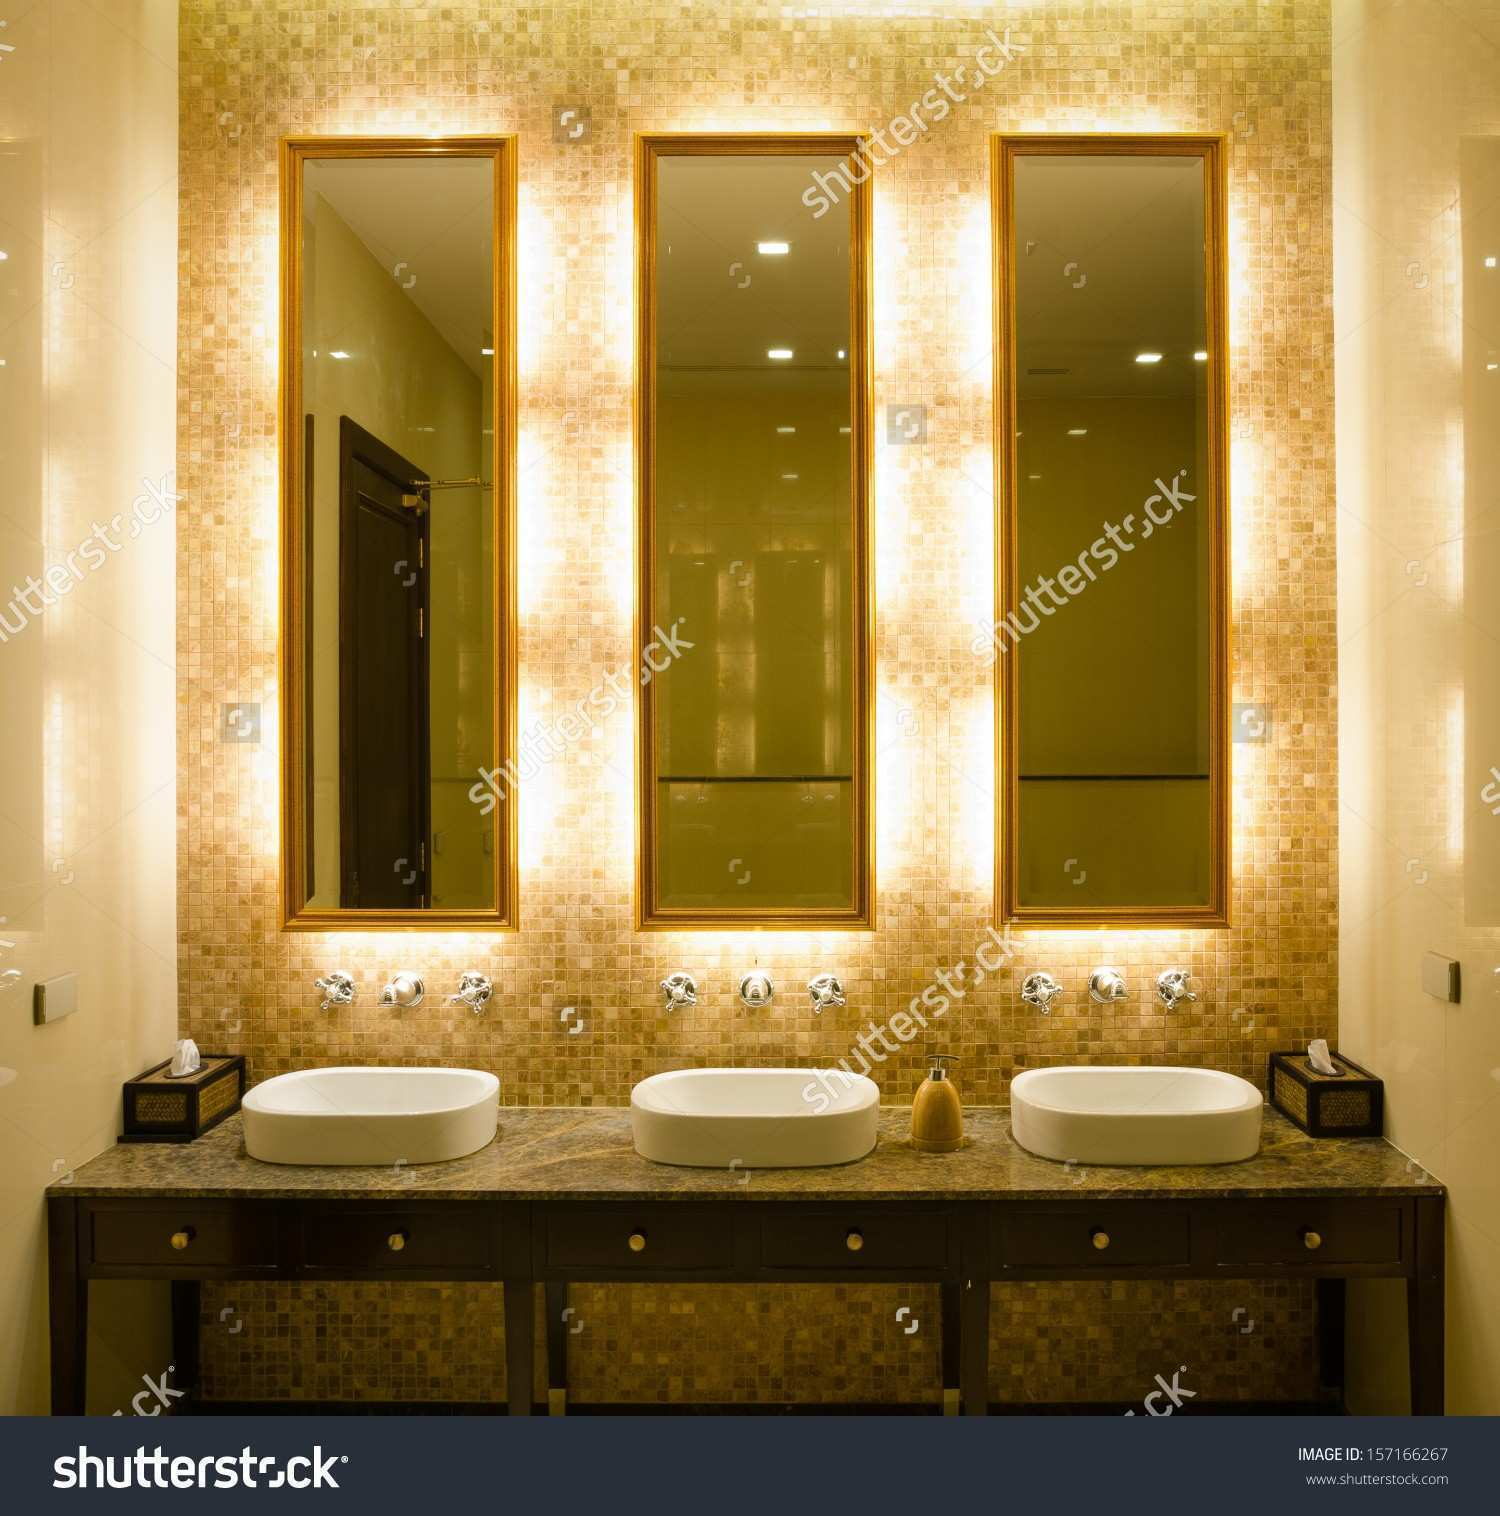 Famous Mirrored Shelf Wall Decor ponent Wall Art Collections